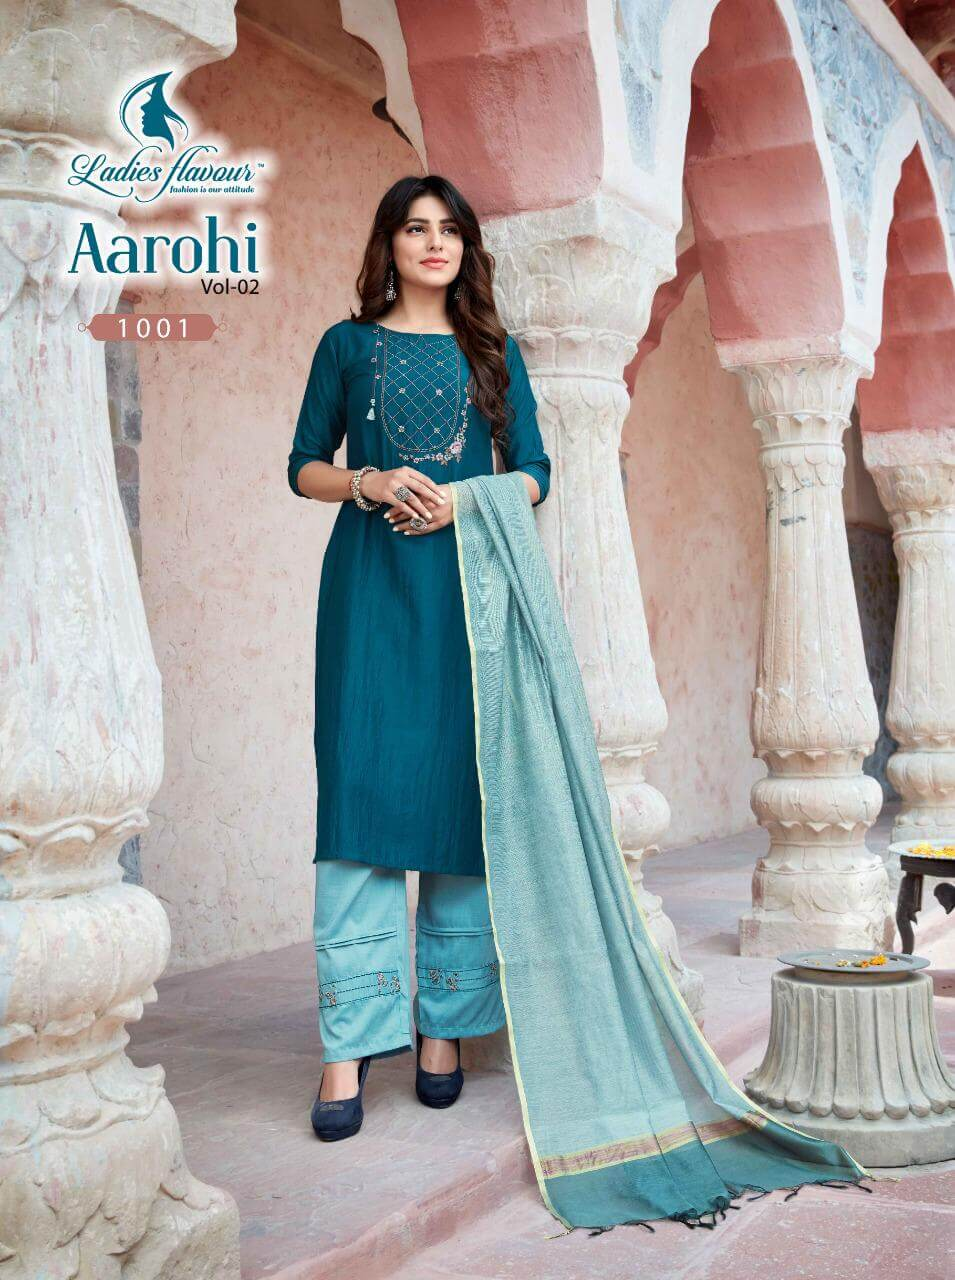 Ladies Flavour Aarohi Vol 2 collection 2